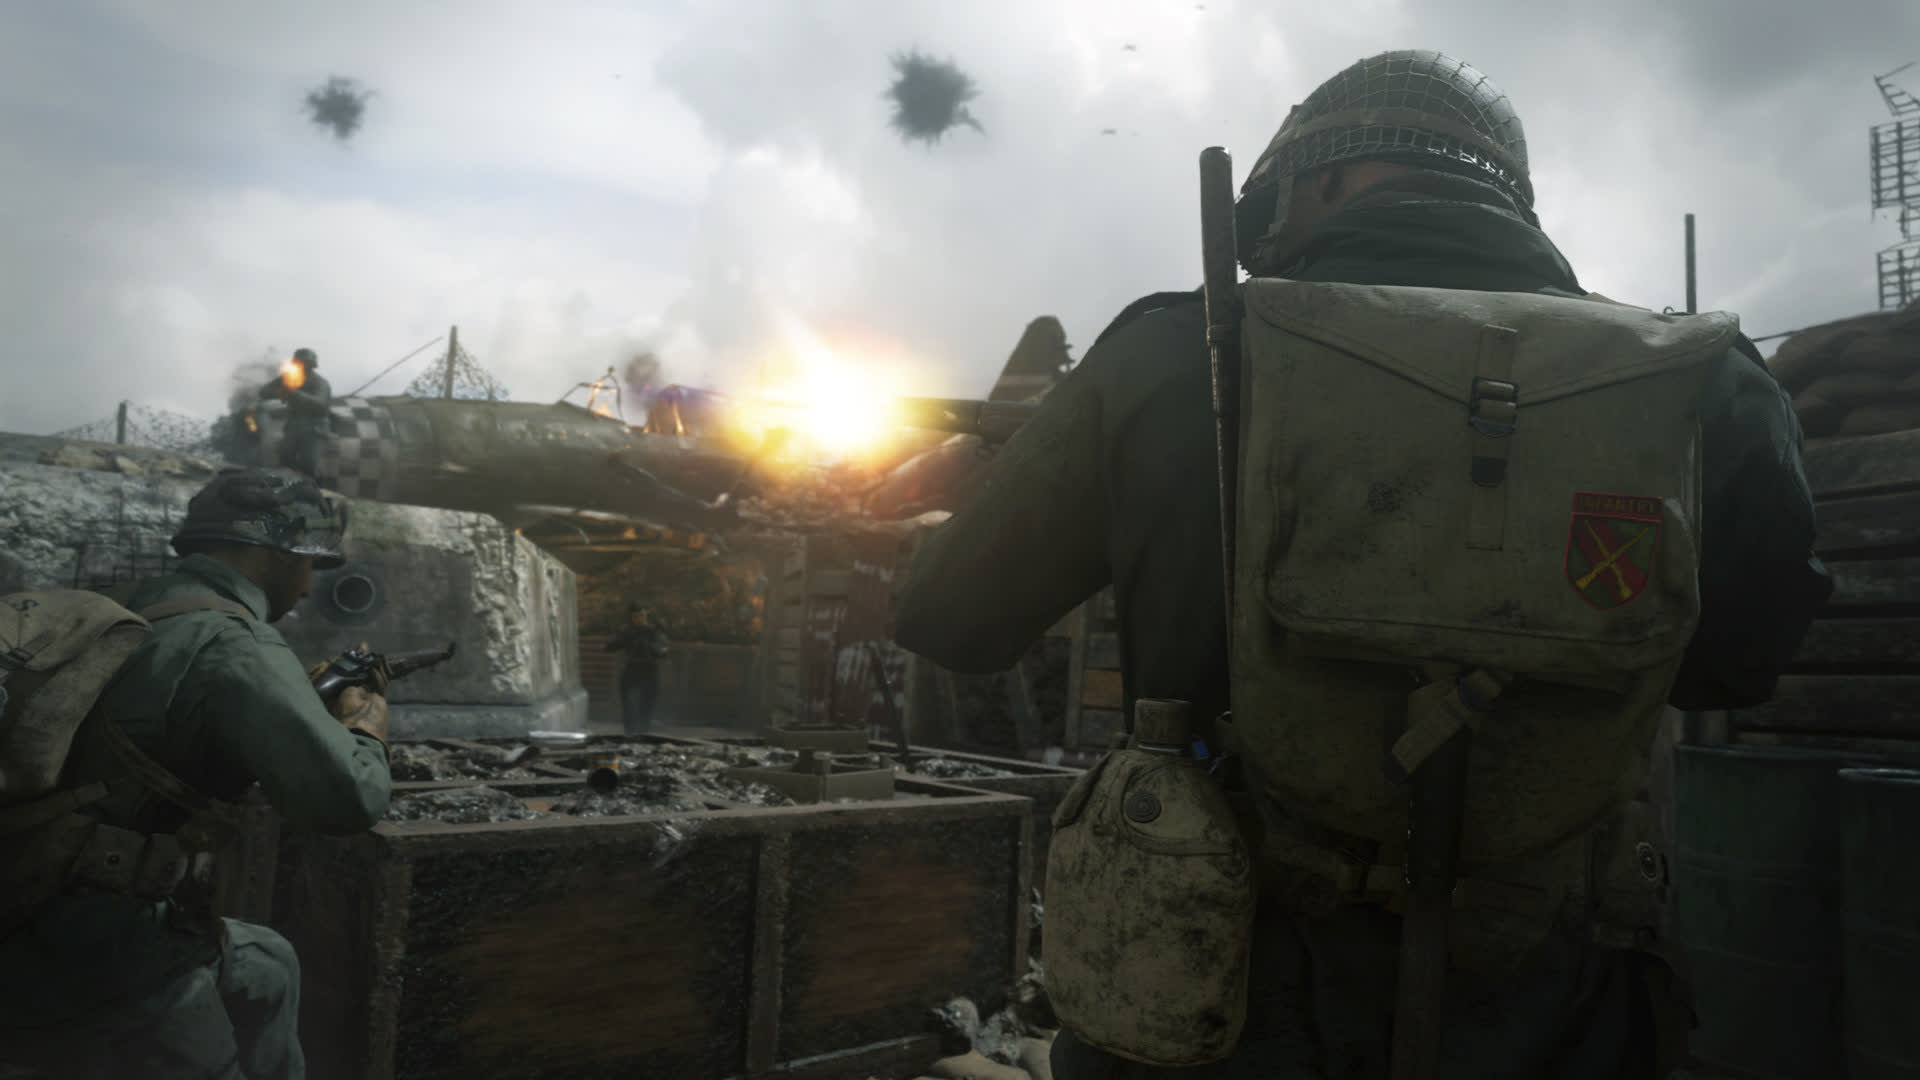 Call of Duty: Vanguard might skip E3 in favor of an in-game announcement in Warzone